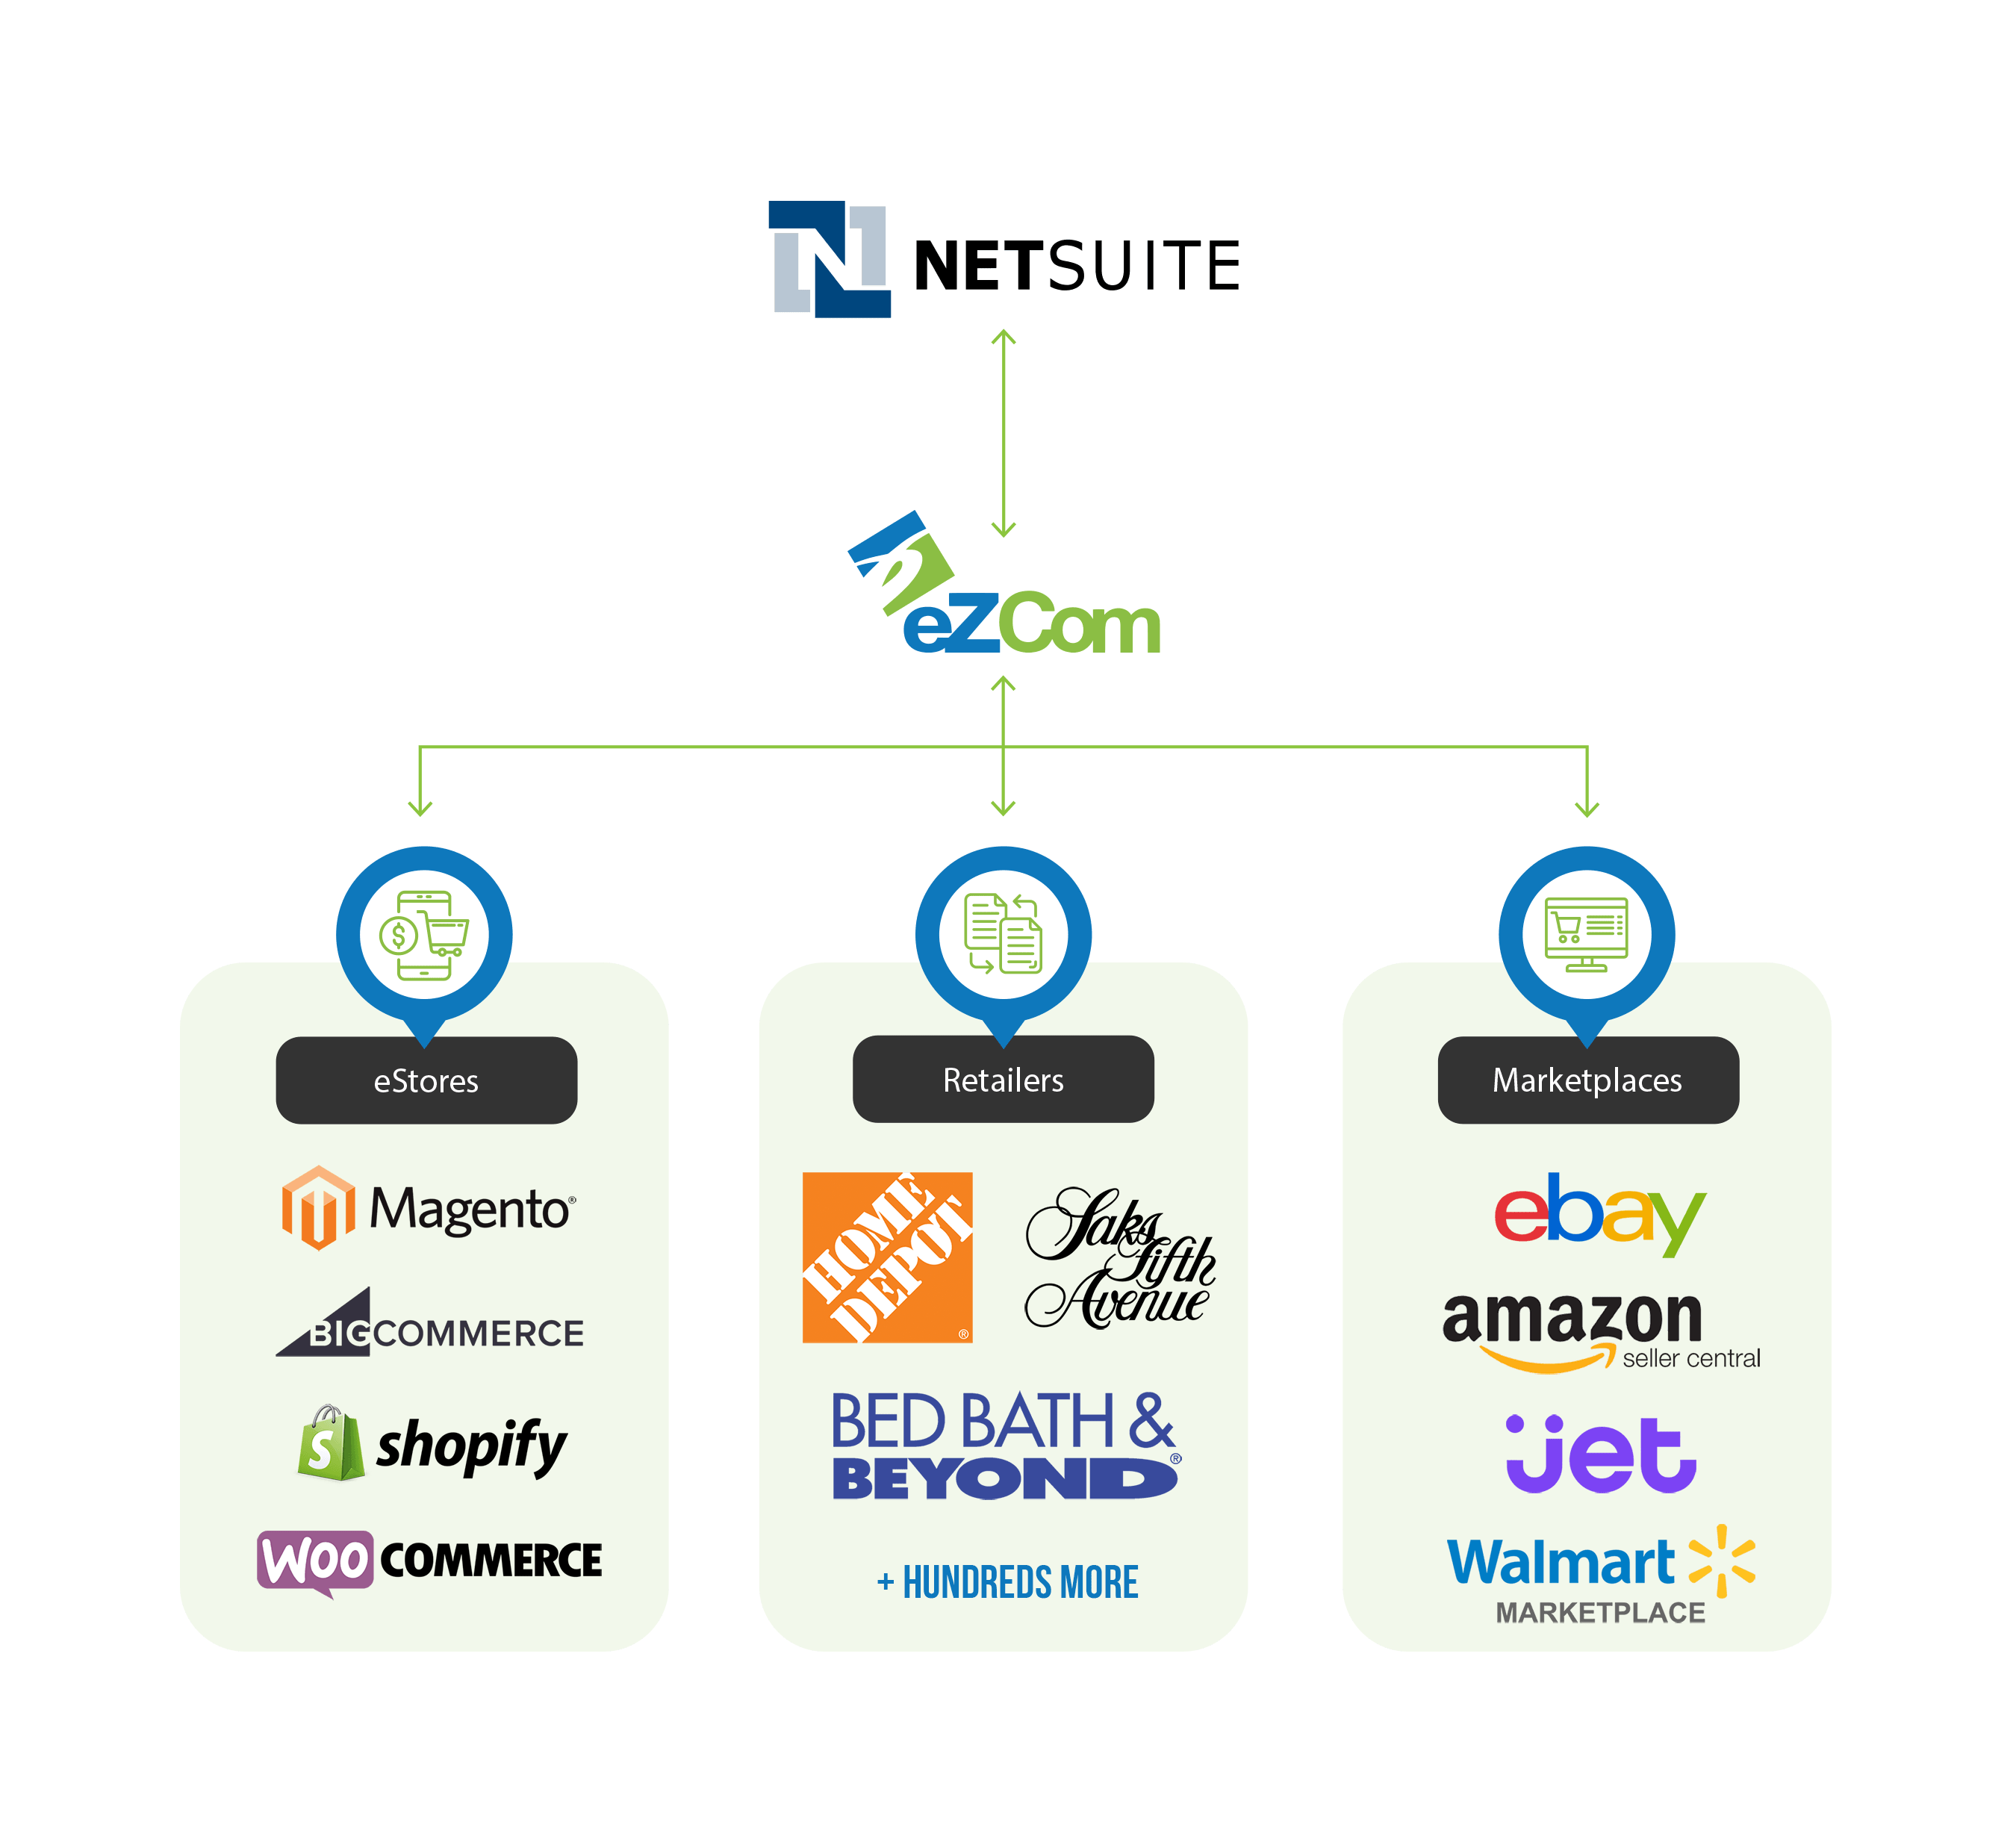 Infographic of eZCom EDI NetSuite Integration